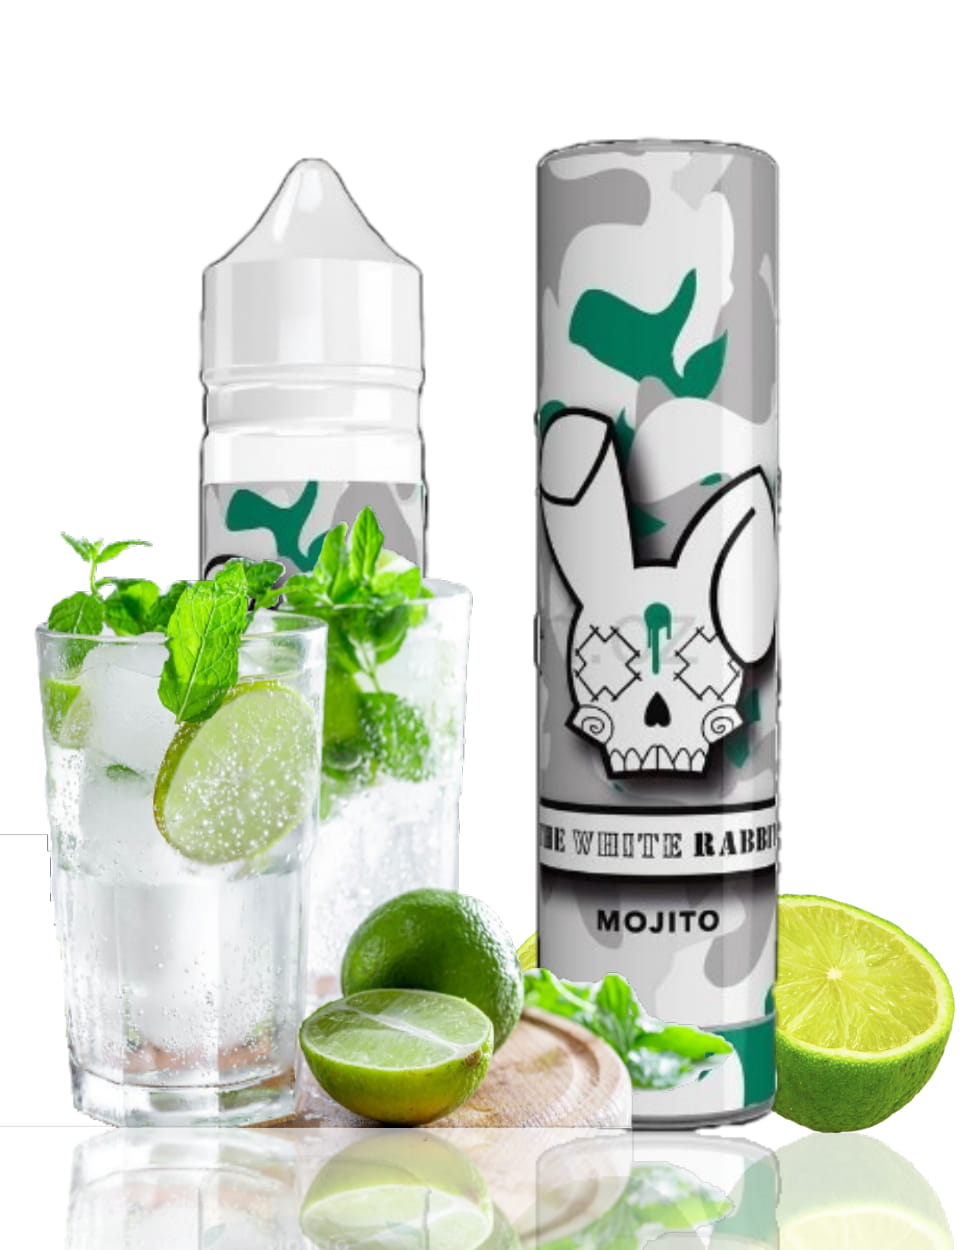 10 ml WSY - The White Rabbit (Shake & Vape)